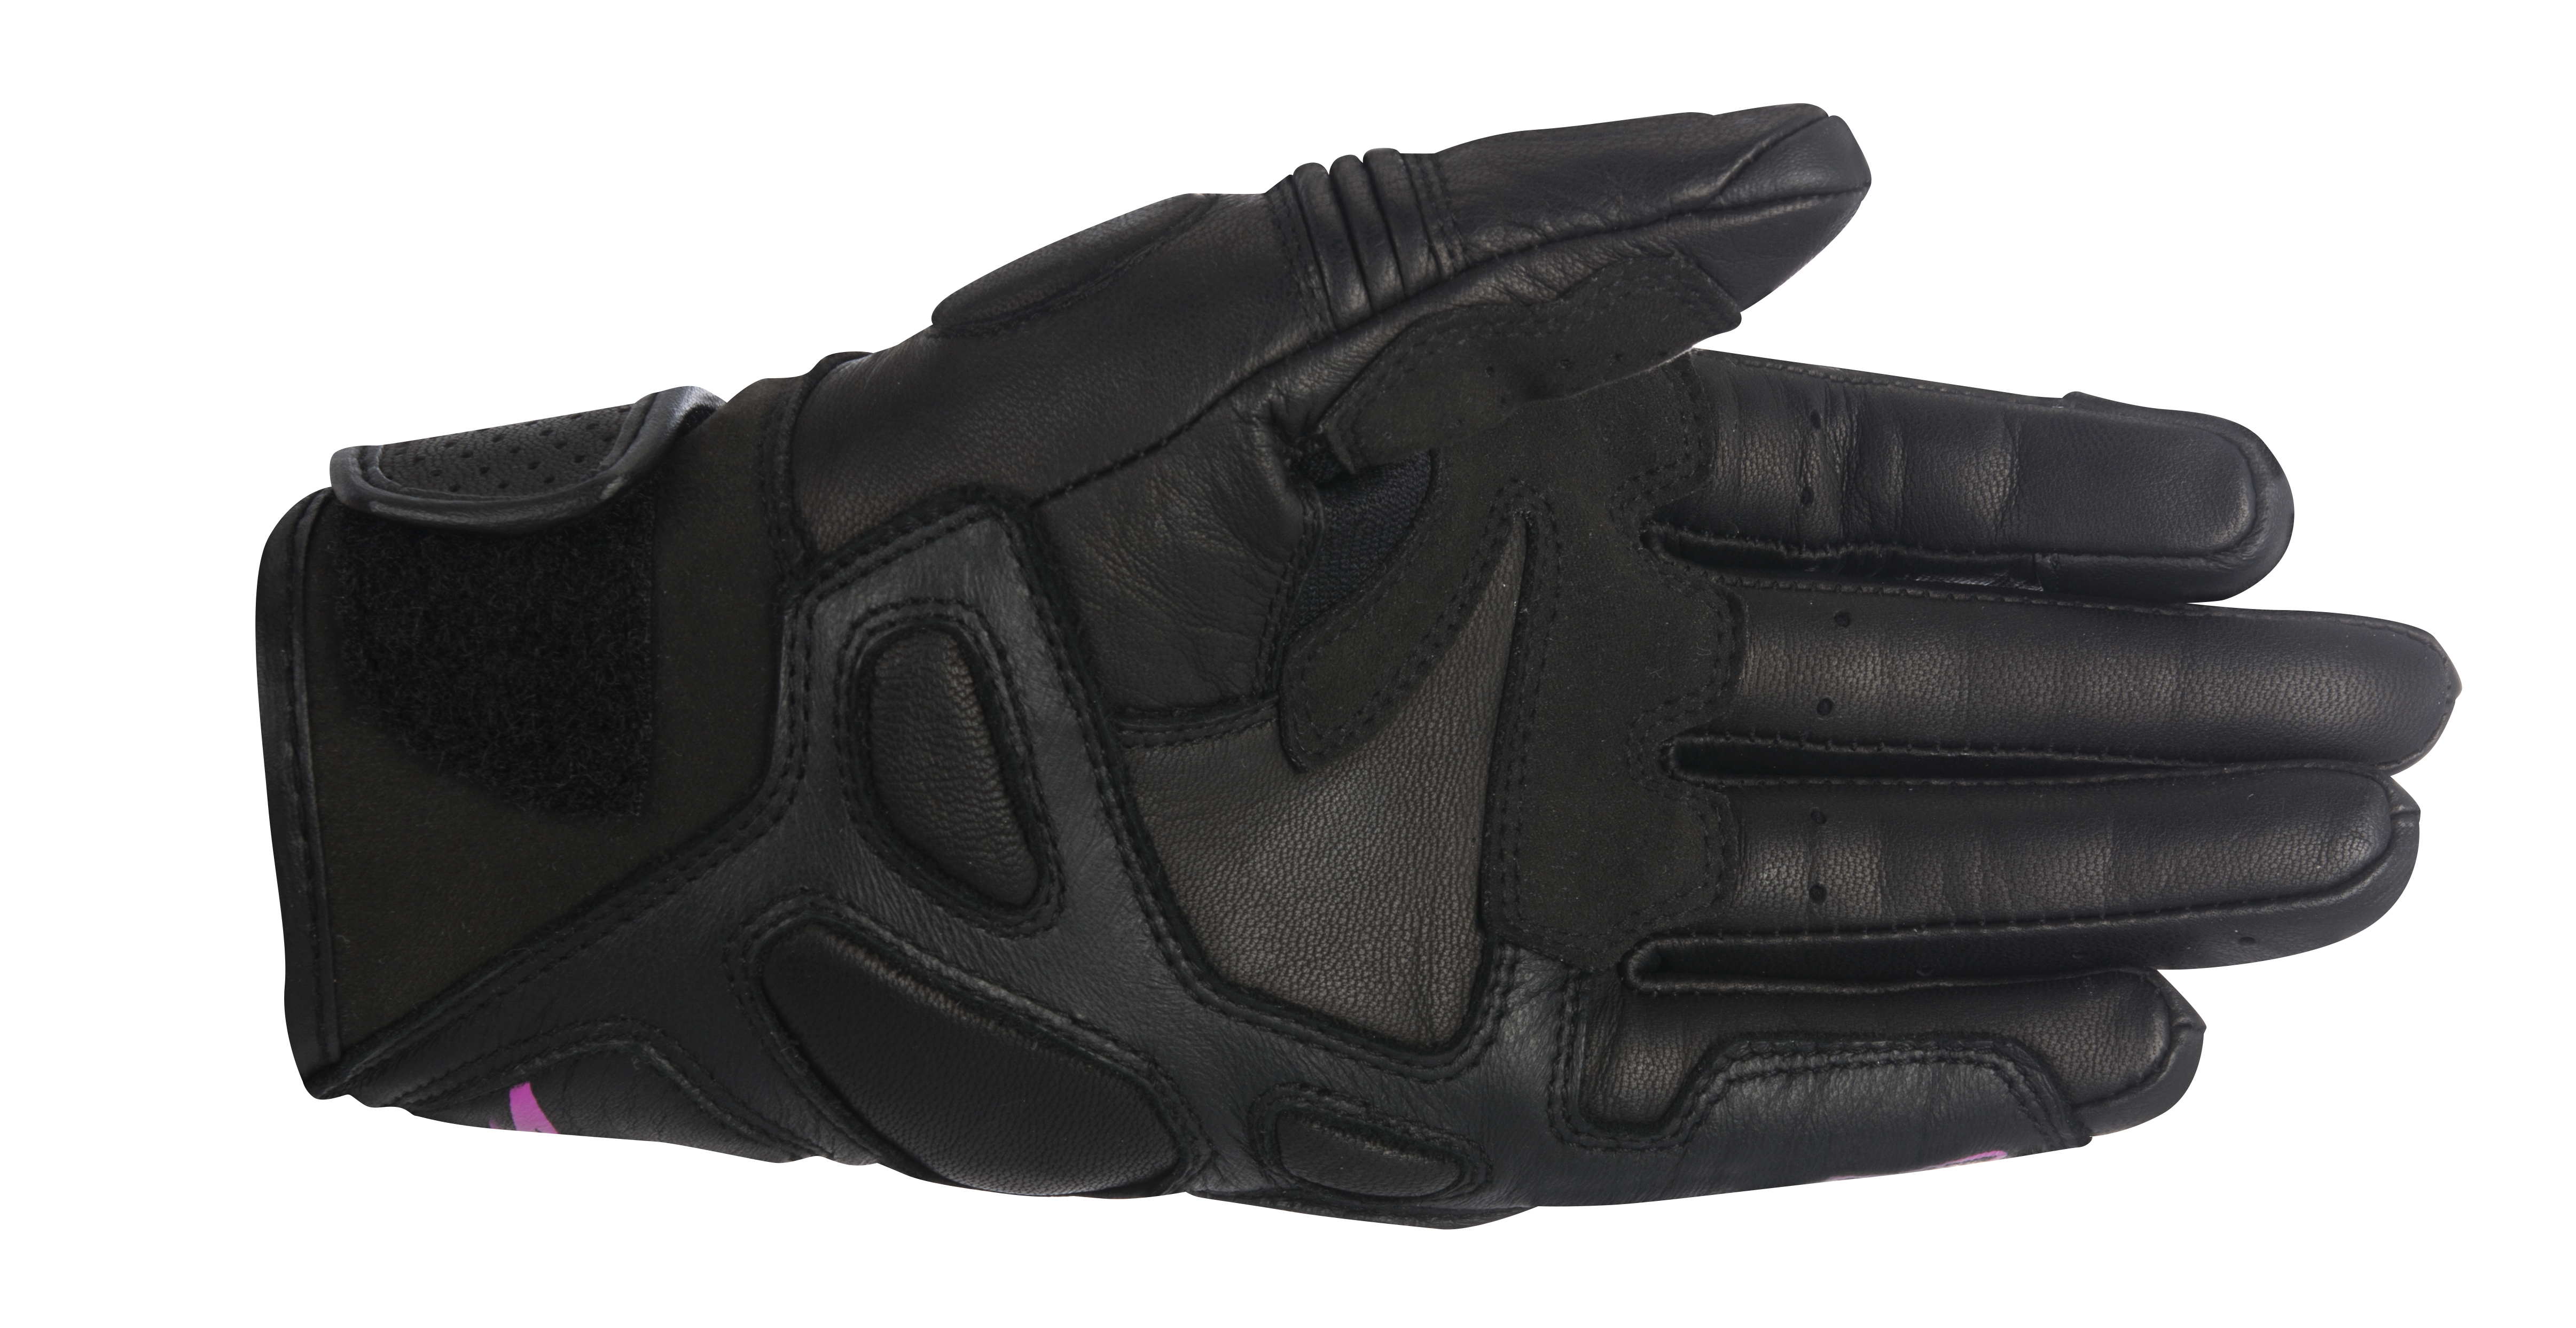 Womens black leather gloves medium - About This Item